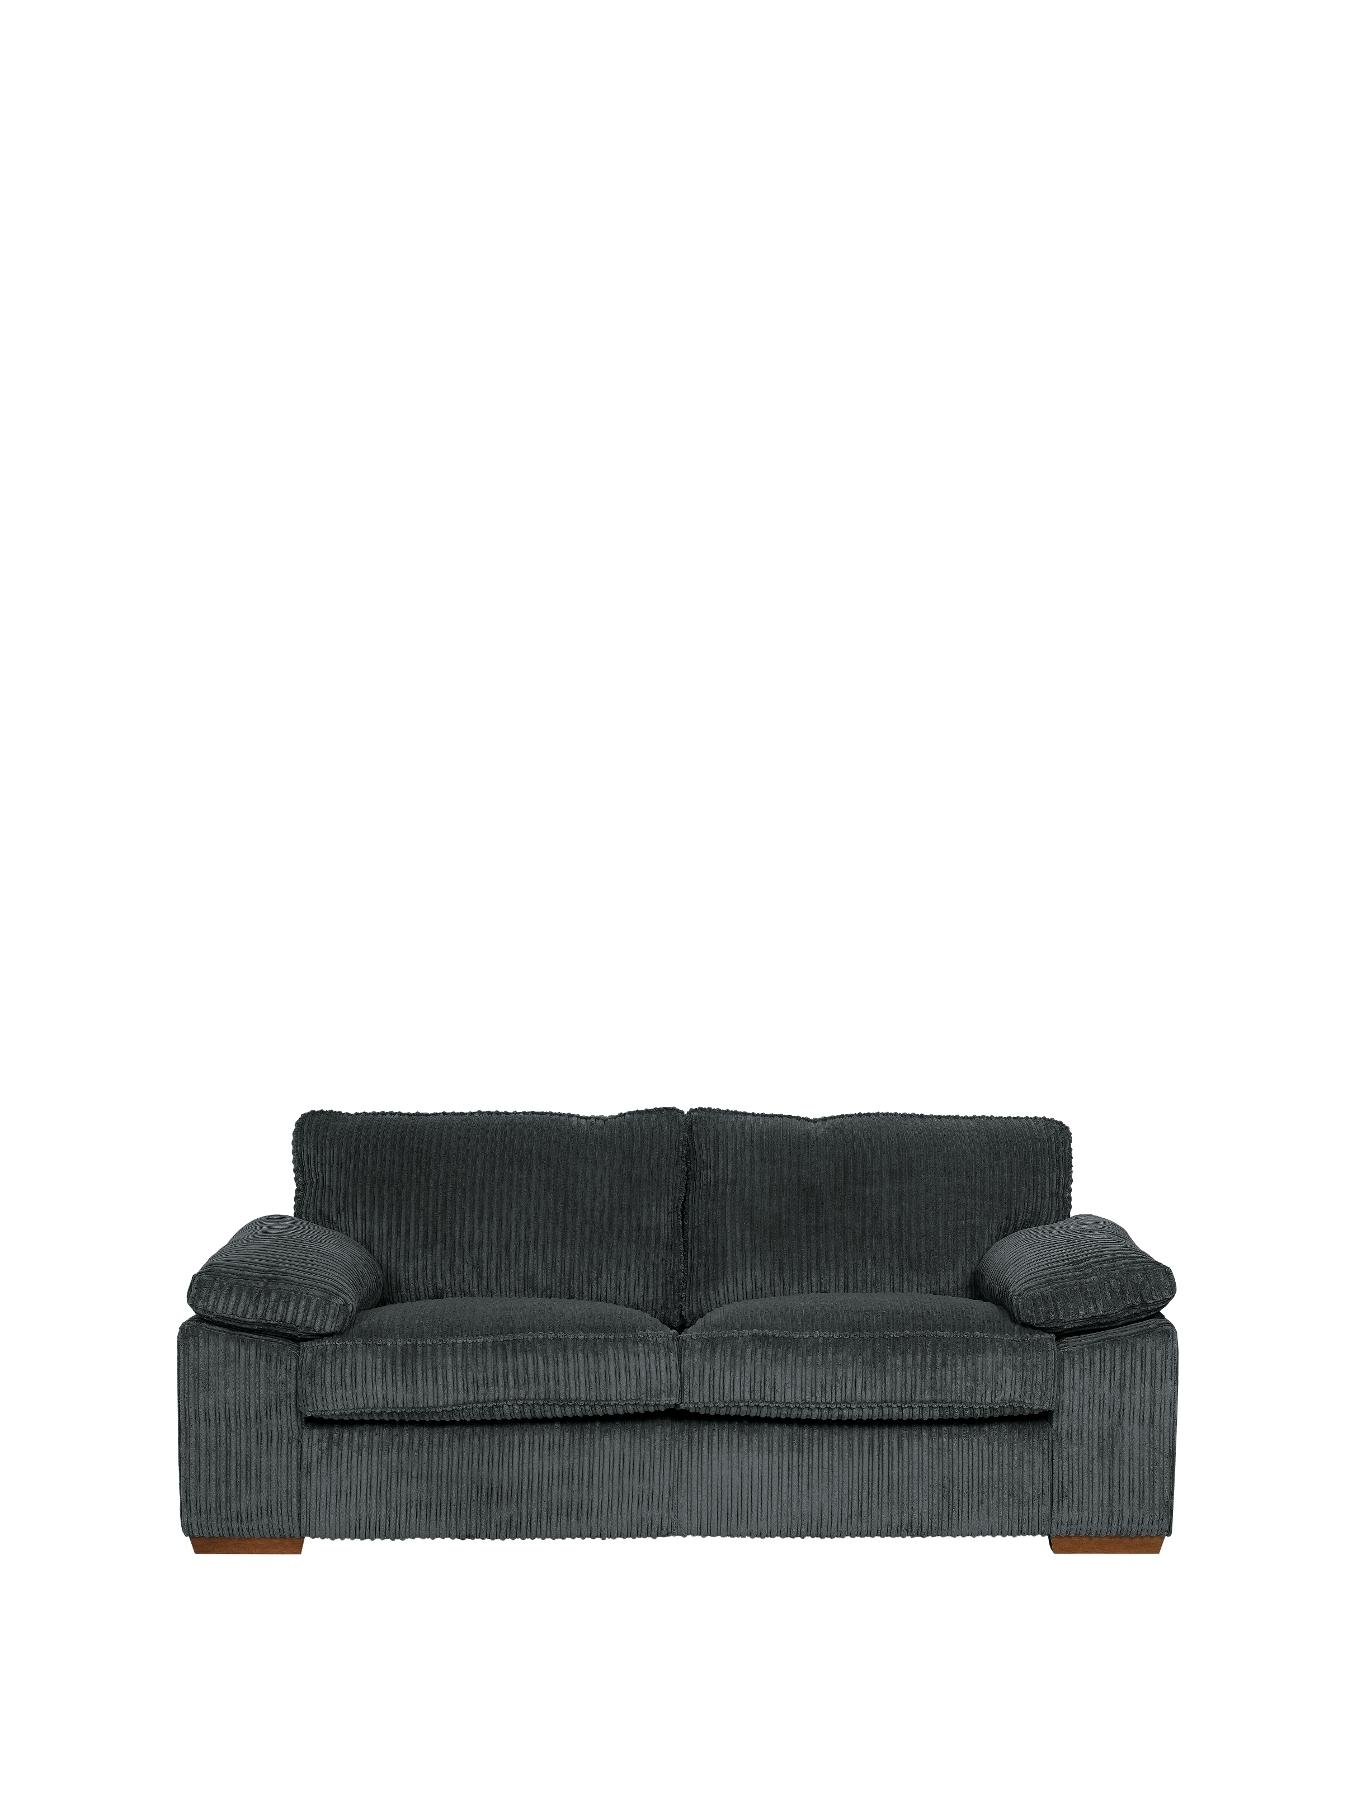 Gladstone 3-Seater Fabric Sofa, Charcoal,Cream,Chocolate